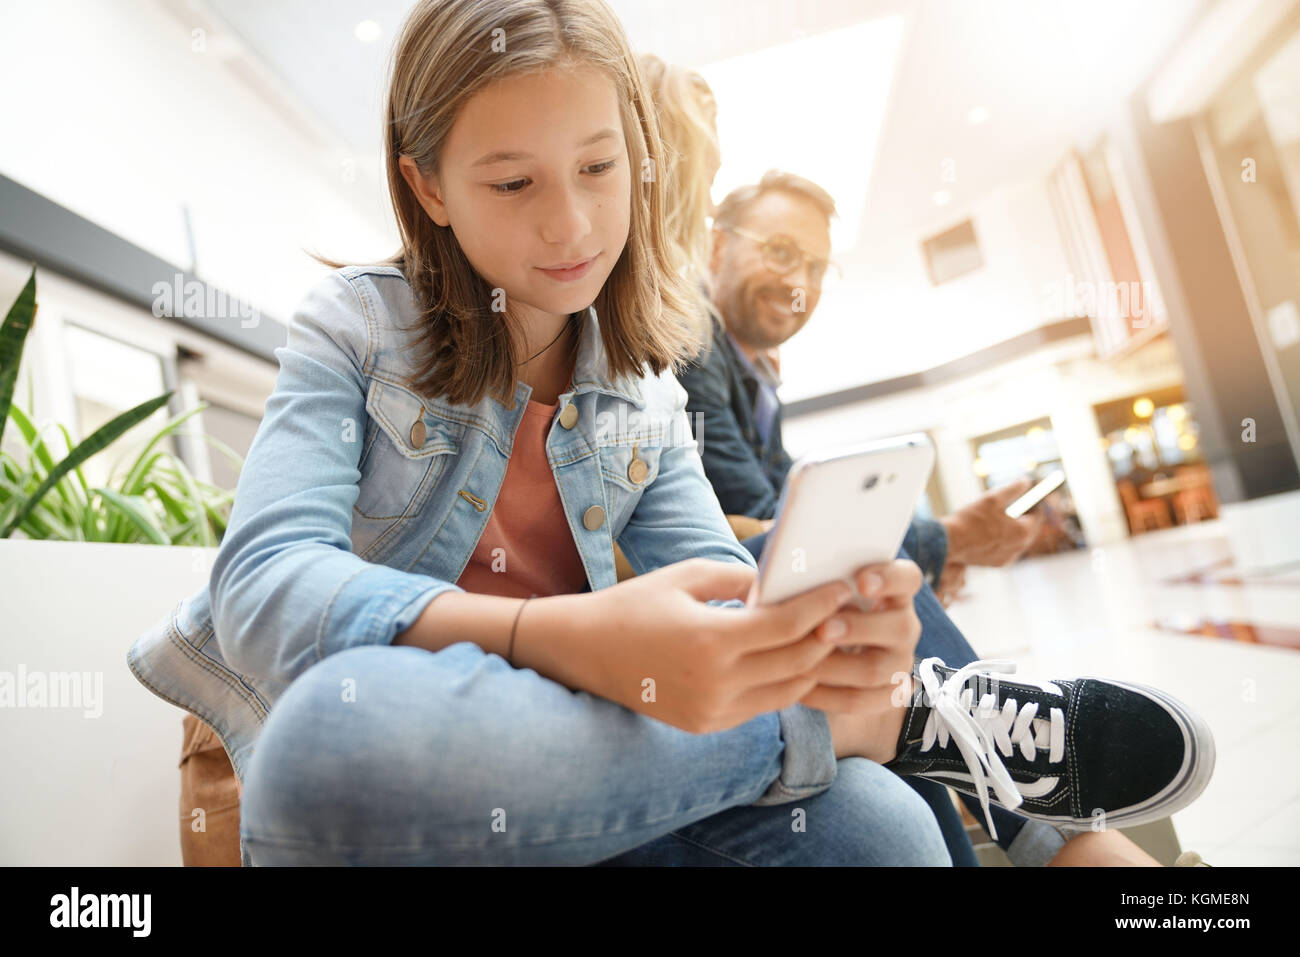 Young girl sitting on bench using smartphone, shopping day - Stock Image